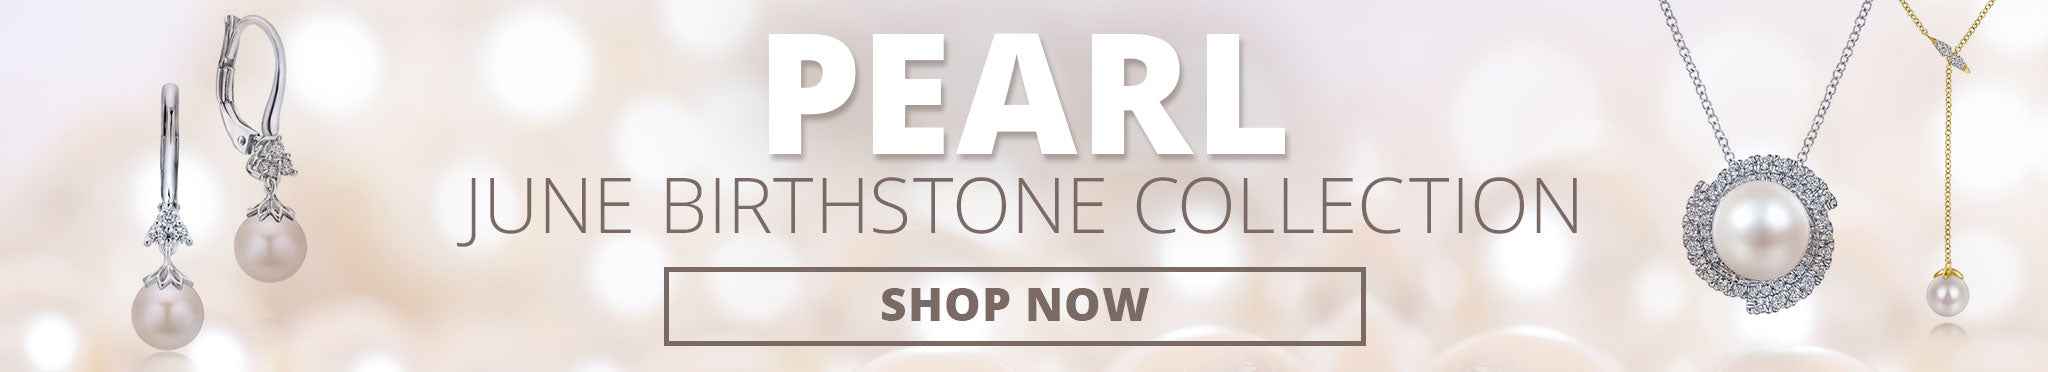 Shop the June Birthstone Collection